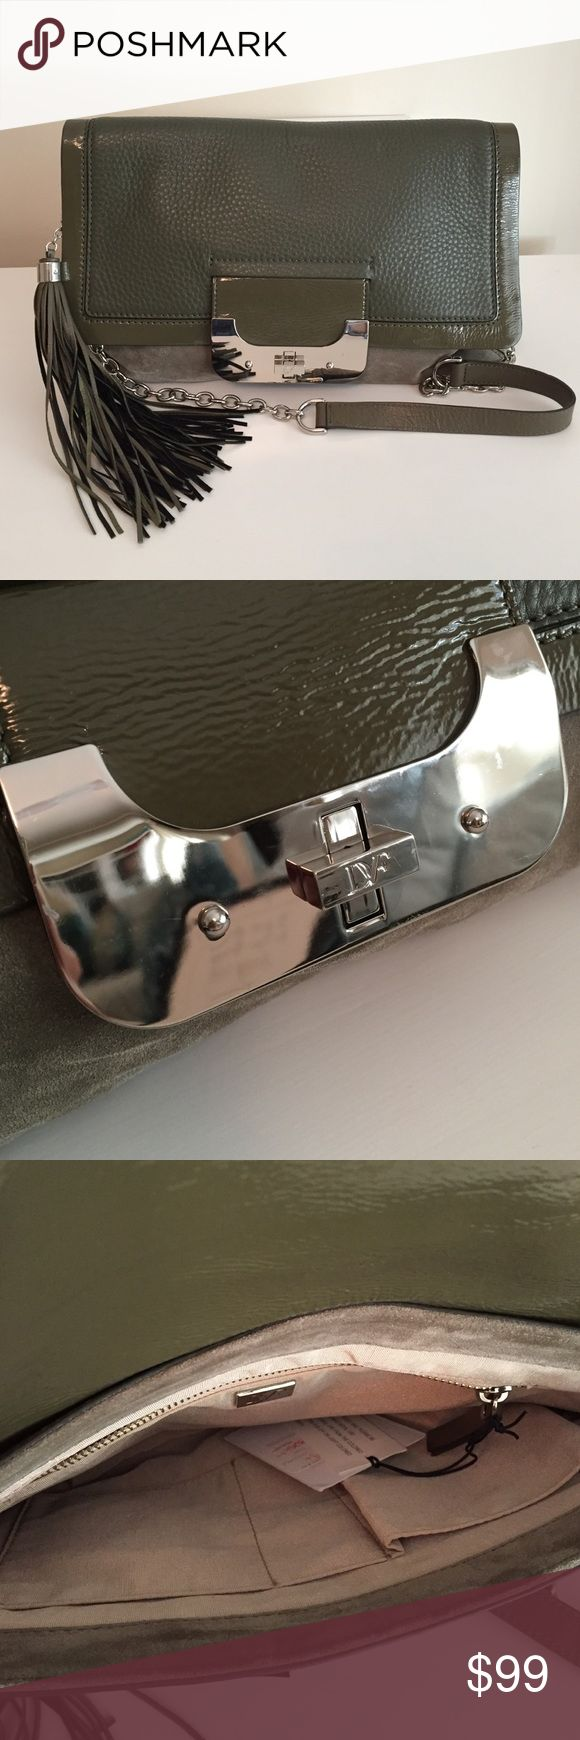 """DVF Bag Diane Von Furstenberg """"Harper"""" envelope bag. Brand new, never worn. Tags are still attached. This hunter green bag is made of soft suede and leather. Diane von Furstenberg Bags Shoulder Bags"""